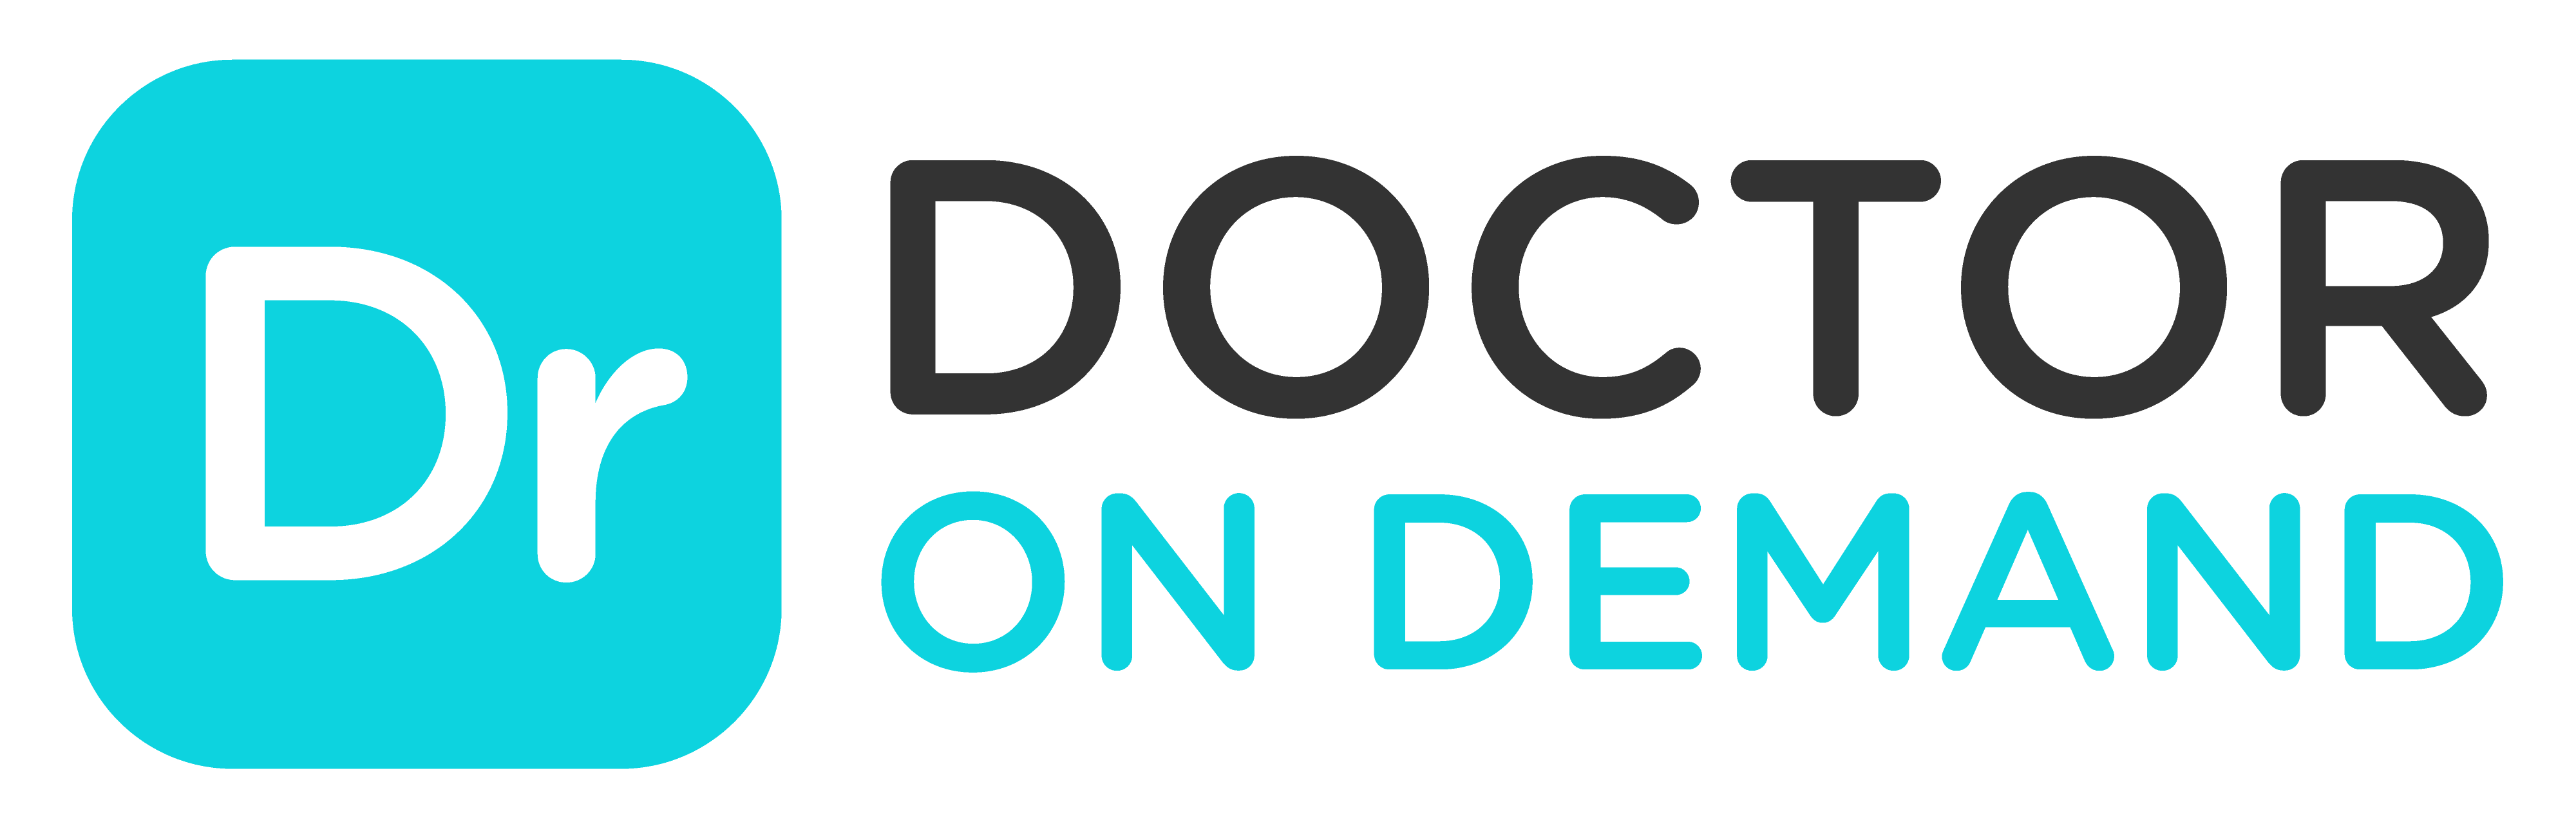 Doctor On Demand Review + Promo Code for FREE First Visit